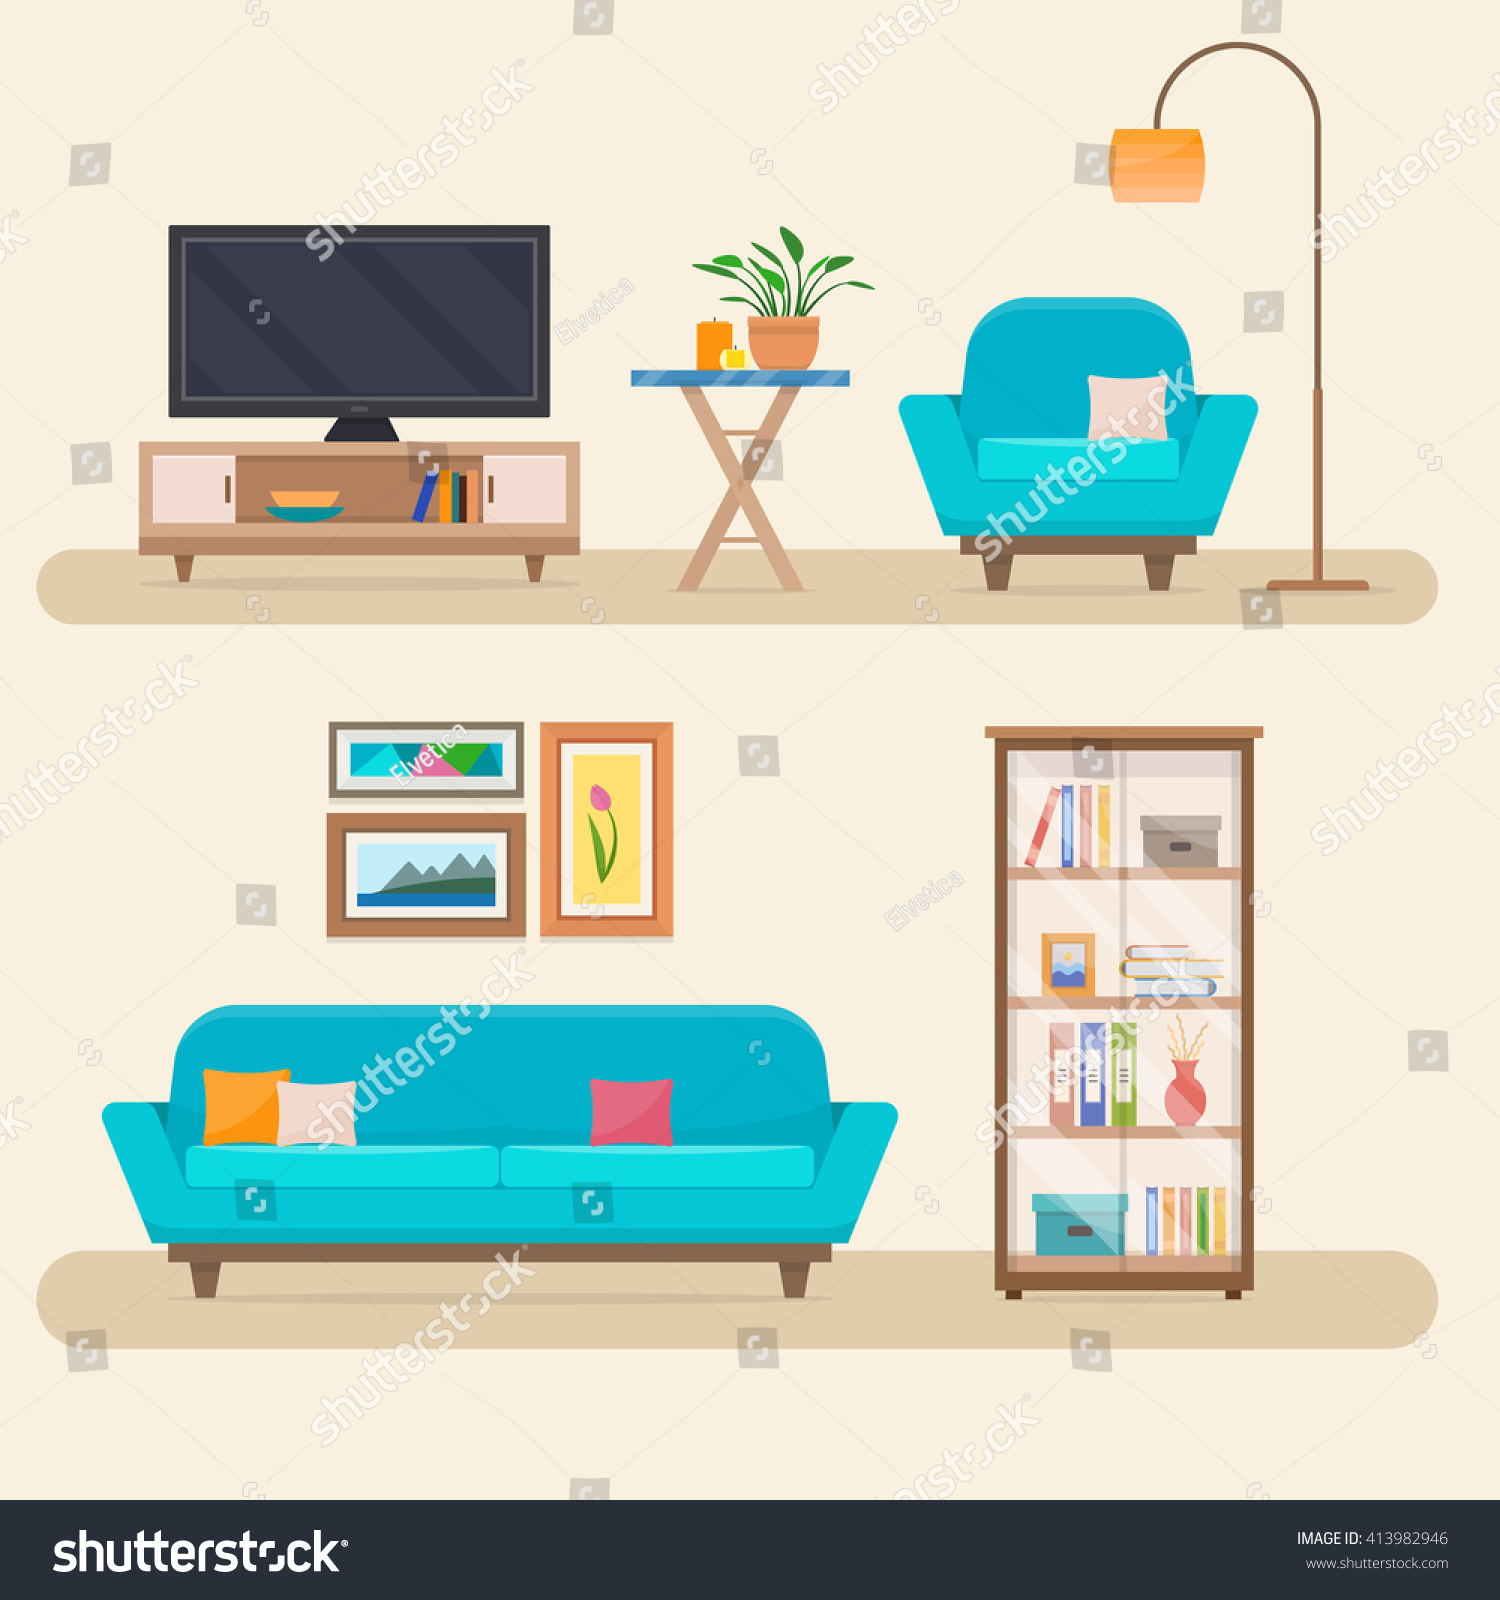 Cozy Living Room Vector Illustration: Living Room Furniture Cozy Interior Sofa Stock Vector